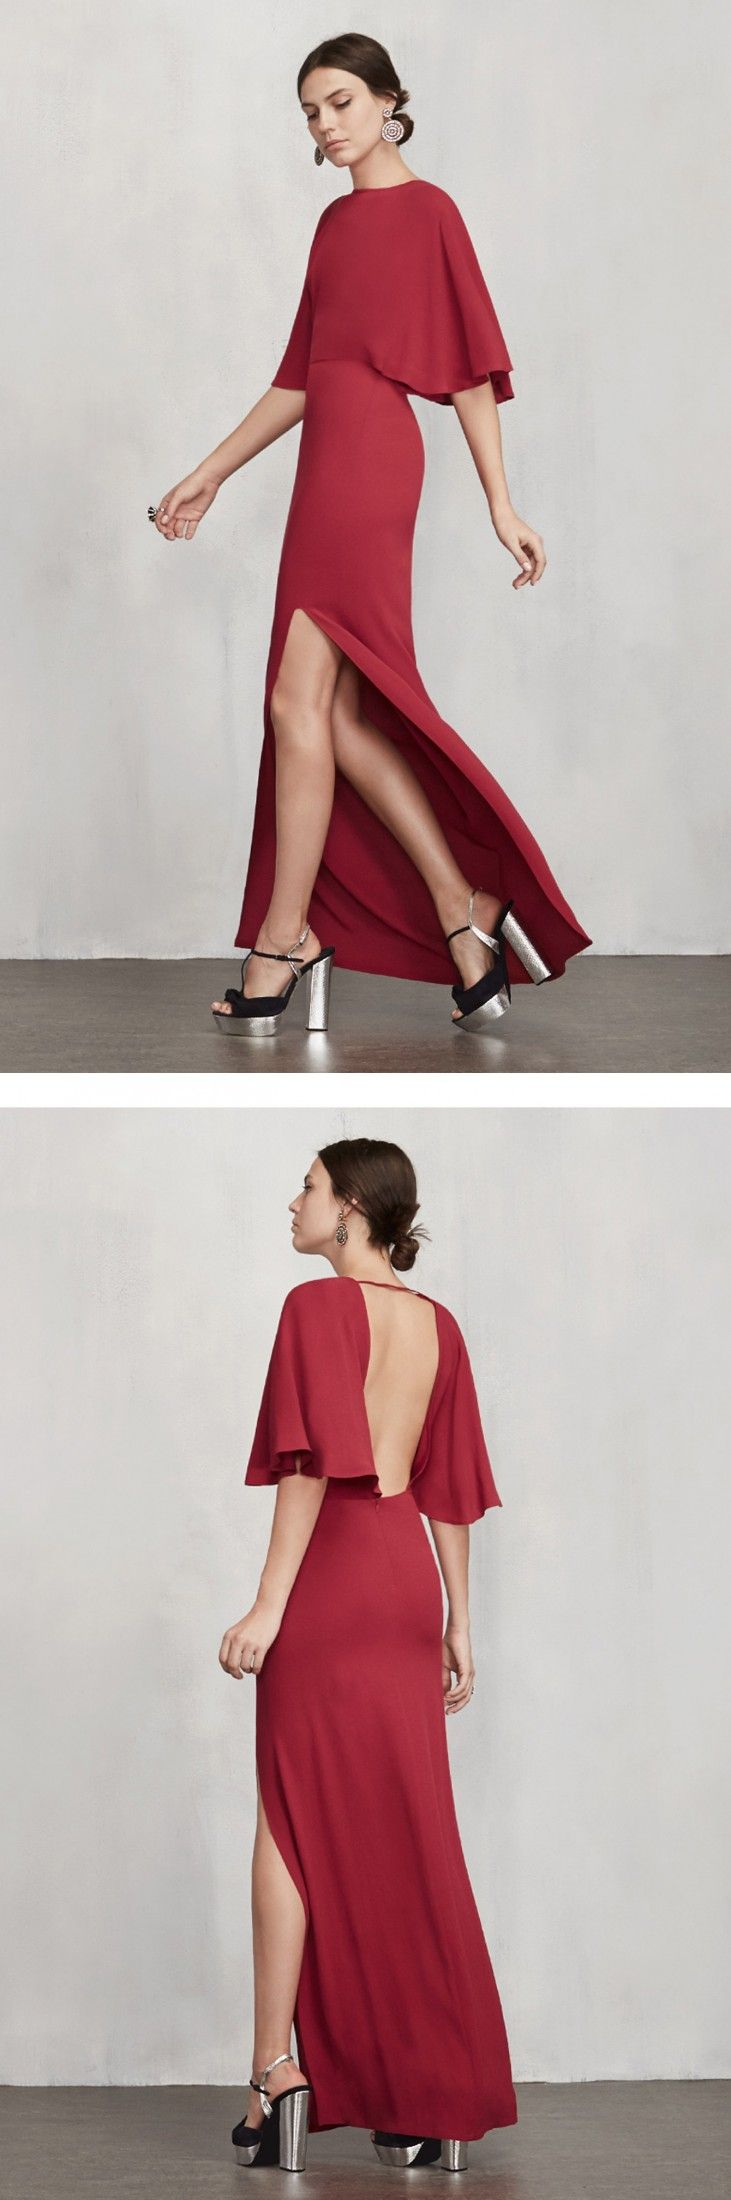 Totally flattering and glamorous cocktail dress — imagine walking in ...